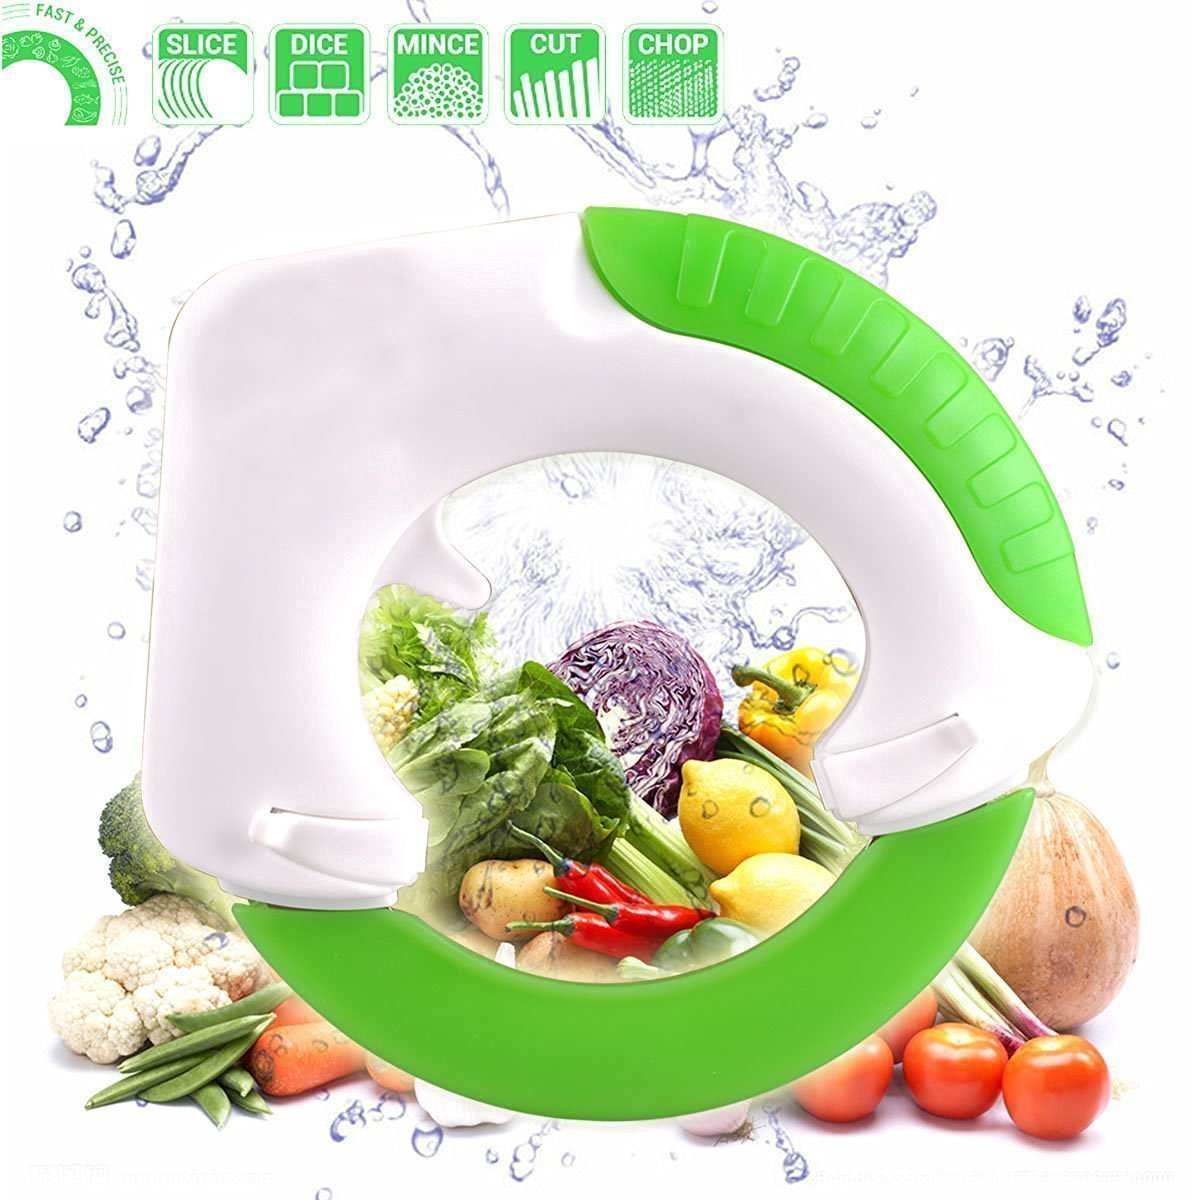 HNIWARE Circular Rolling Knife Multi-Purpose Cutting Tool with Unique Ergonomic Design - FAST & EASY for cutting Meat, Salad, Pizza & Vegetables- Protect your wrist with this Rolling Knife by HNIWARE